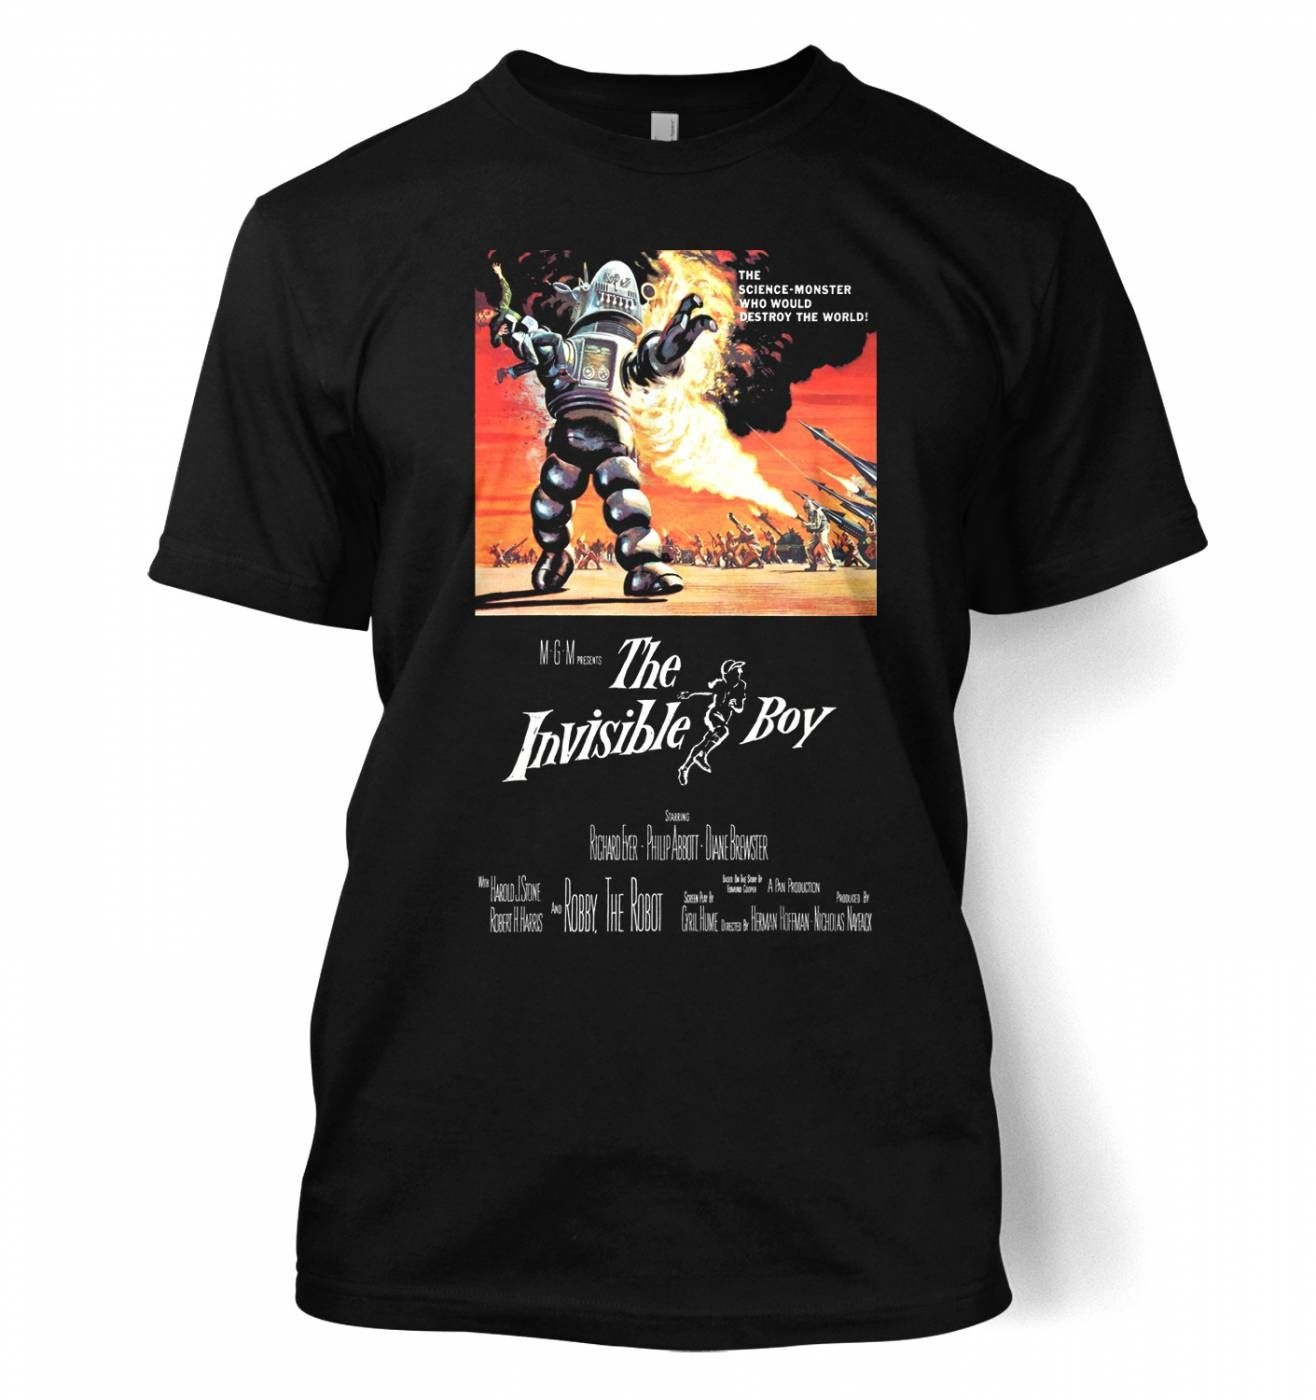 The Invisible Boy men's t-shirt